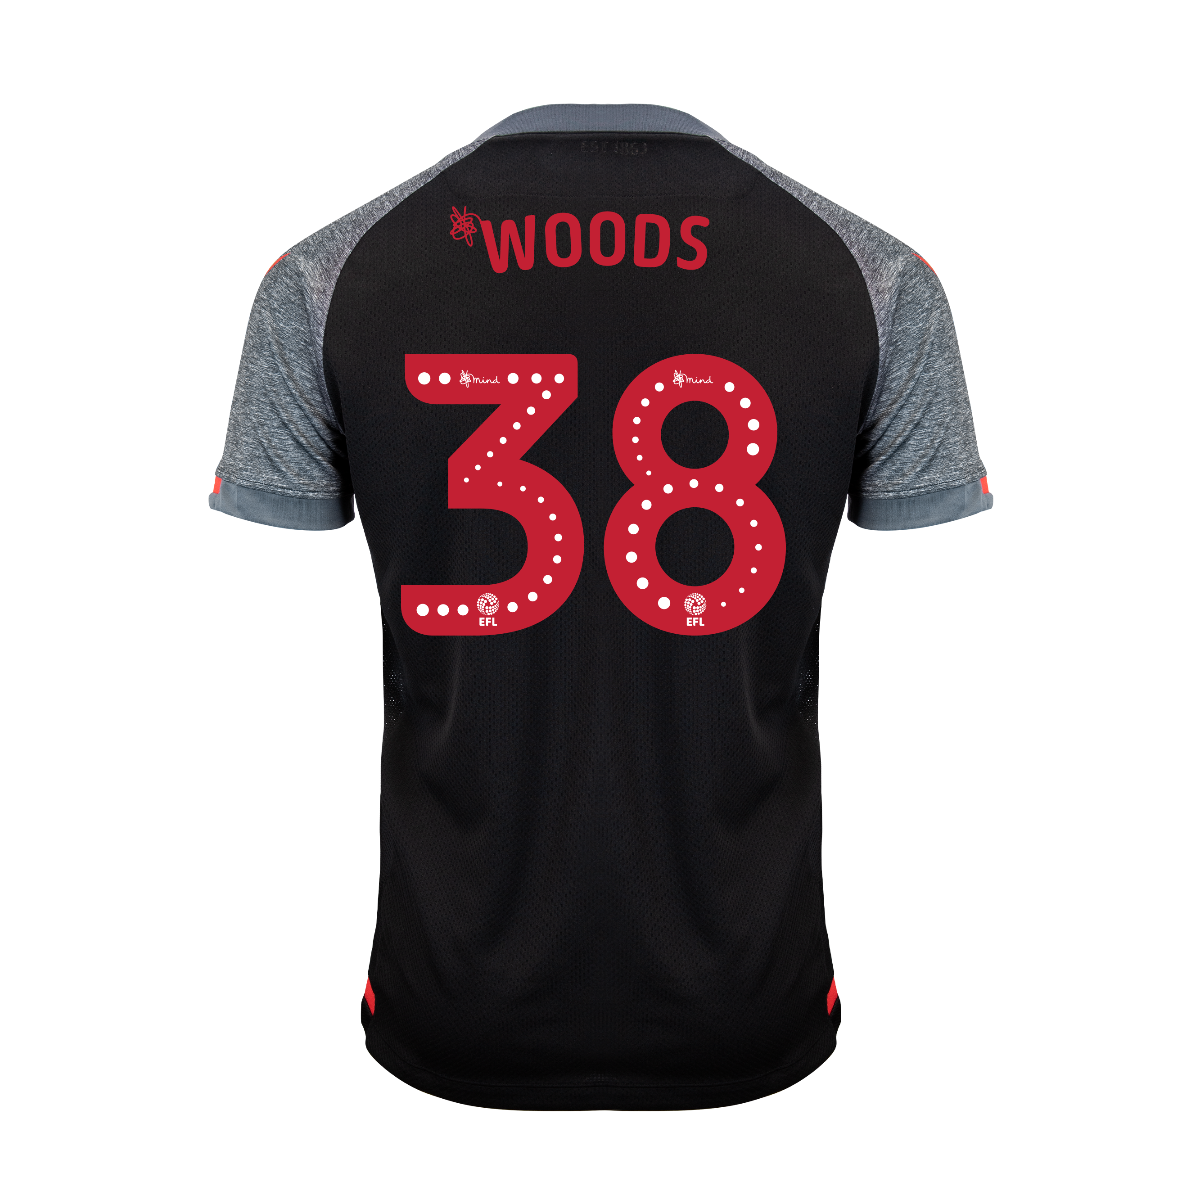 2019/20 Ladies Away Shirt - Woods